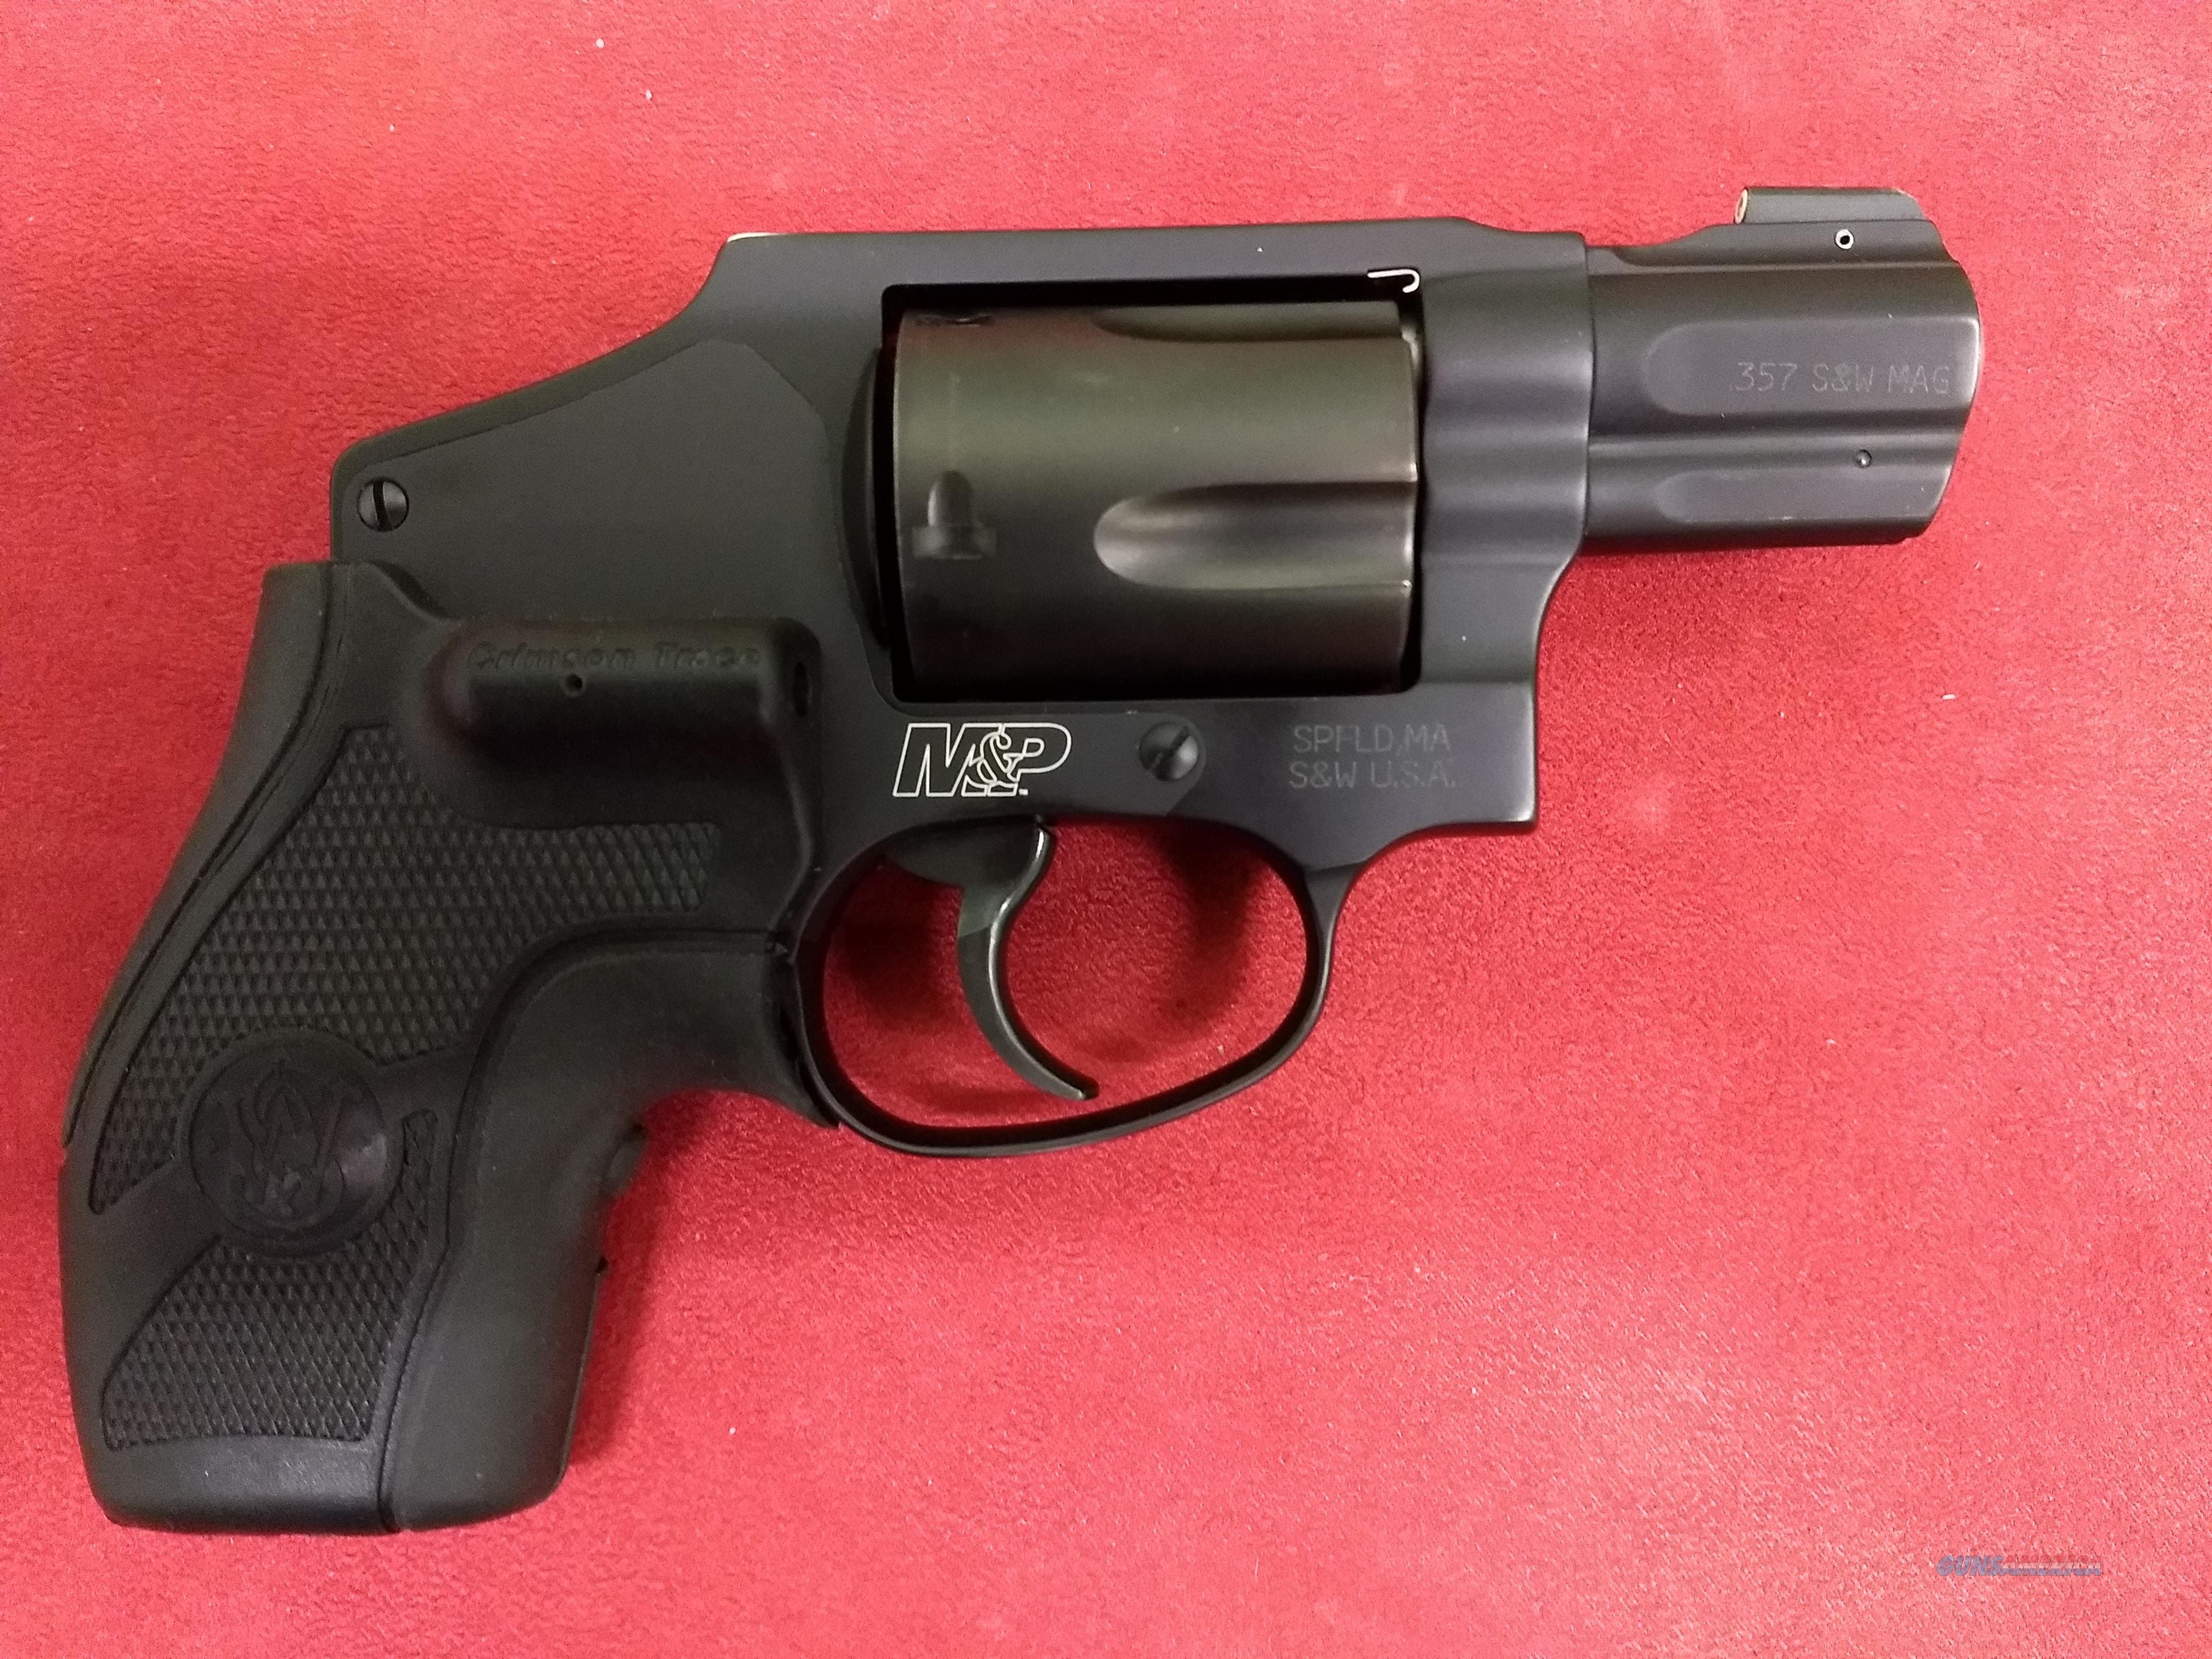 S&W M&P 340, .357 Mag, w/ Night Sights, Laser Grip, & Holster!  Guns > Pistols > Smith & Wesson Revolvers > Small Frame ( J )